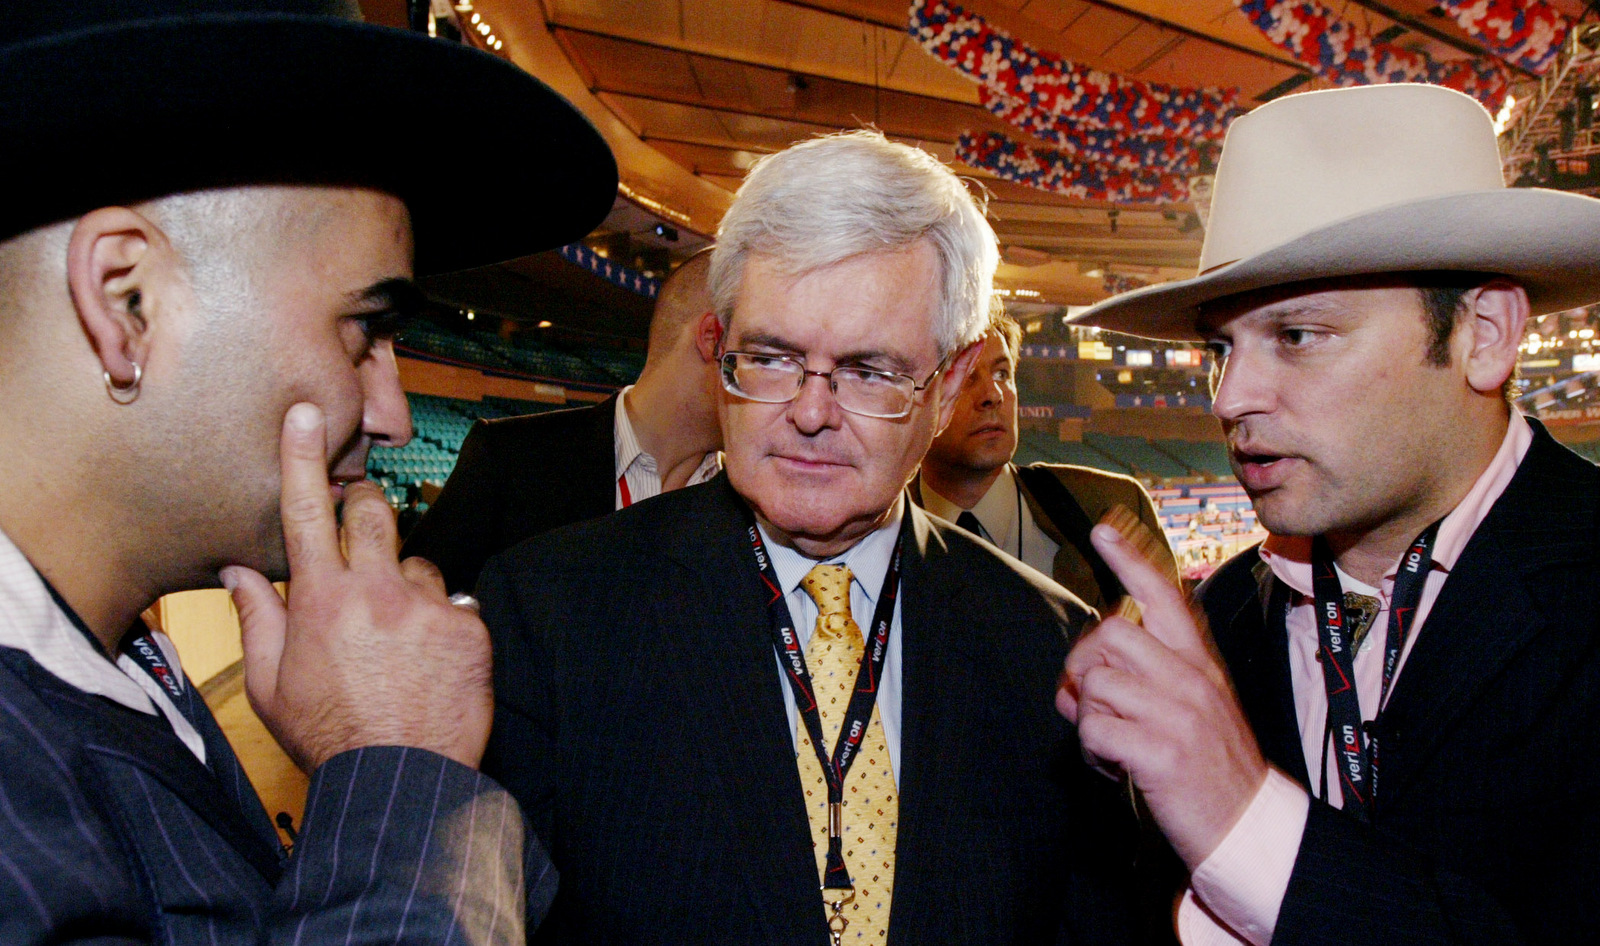 Newt Gingrich, center, former Speaker of the U. S. House of Representatives, is interviewed by Dutch television journalists Gideon Levy, left, and Bahram Sadeghi at the Republican National Convention in Madison Square Garden, Sept. 1, 2004 in New York. (AP/Gregory Bull)